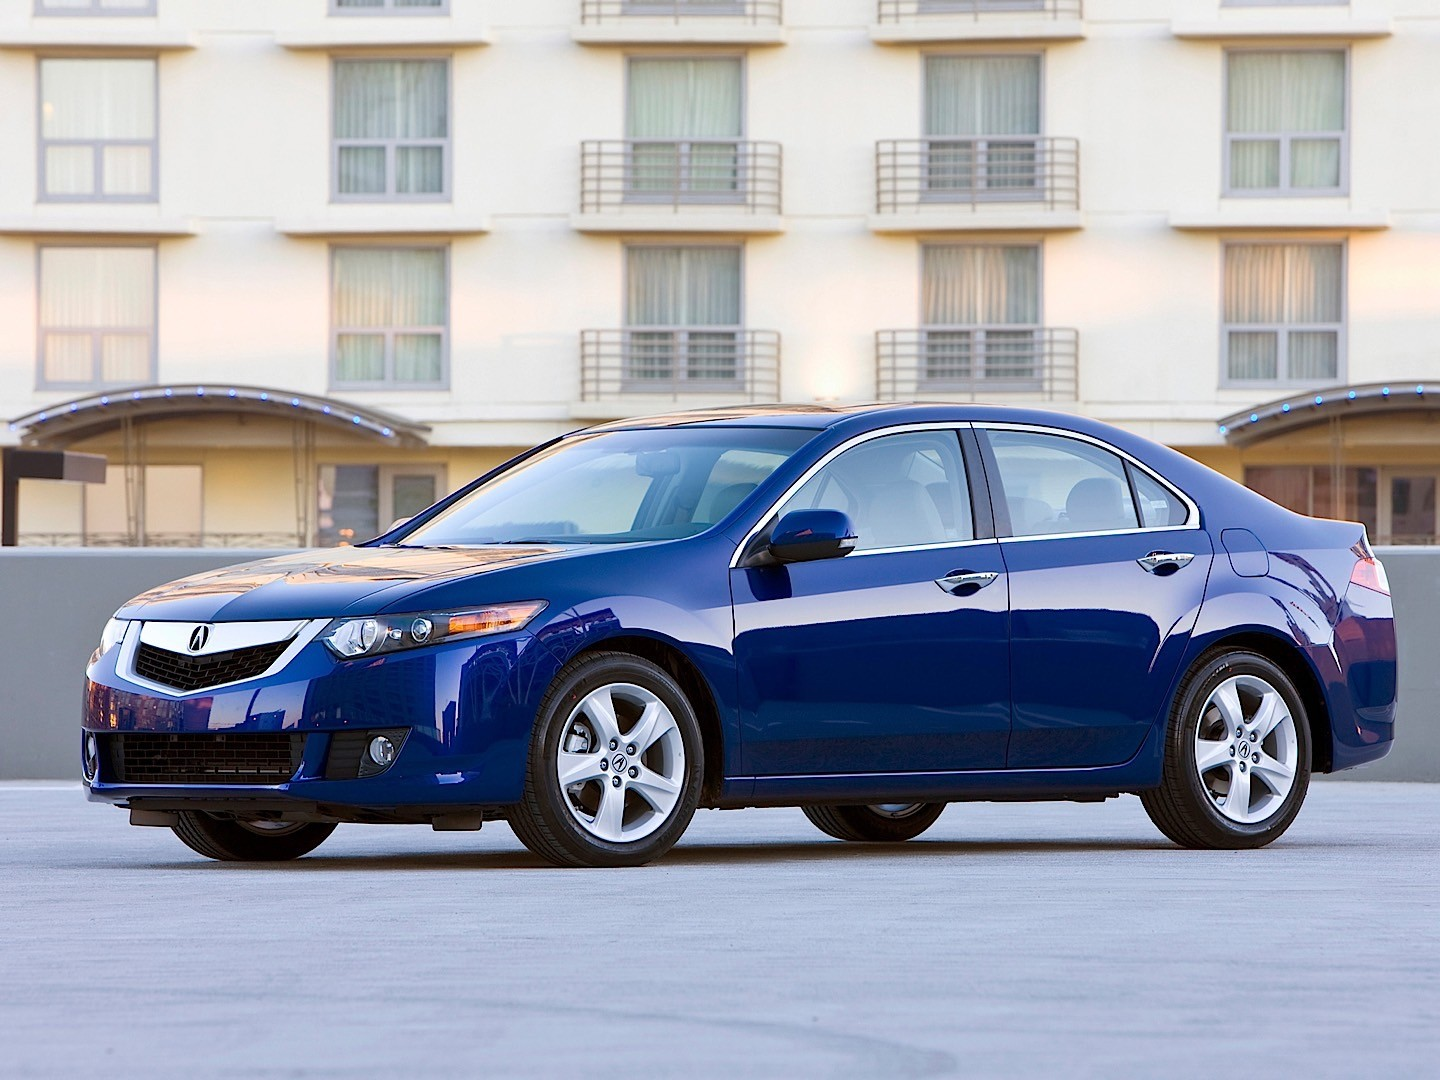 Tsx as well Acura Tsx moreover Acura Tsx in addition Acura Tsx moreover Hqdefault. on 2010 acura tsx v6